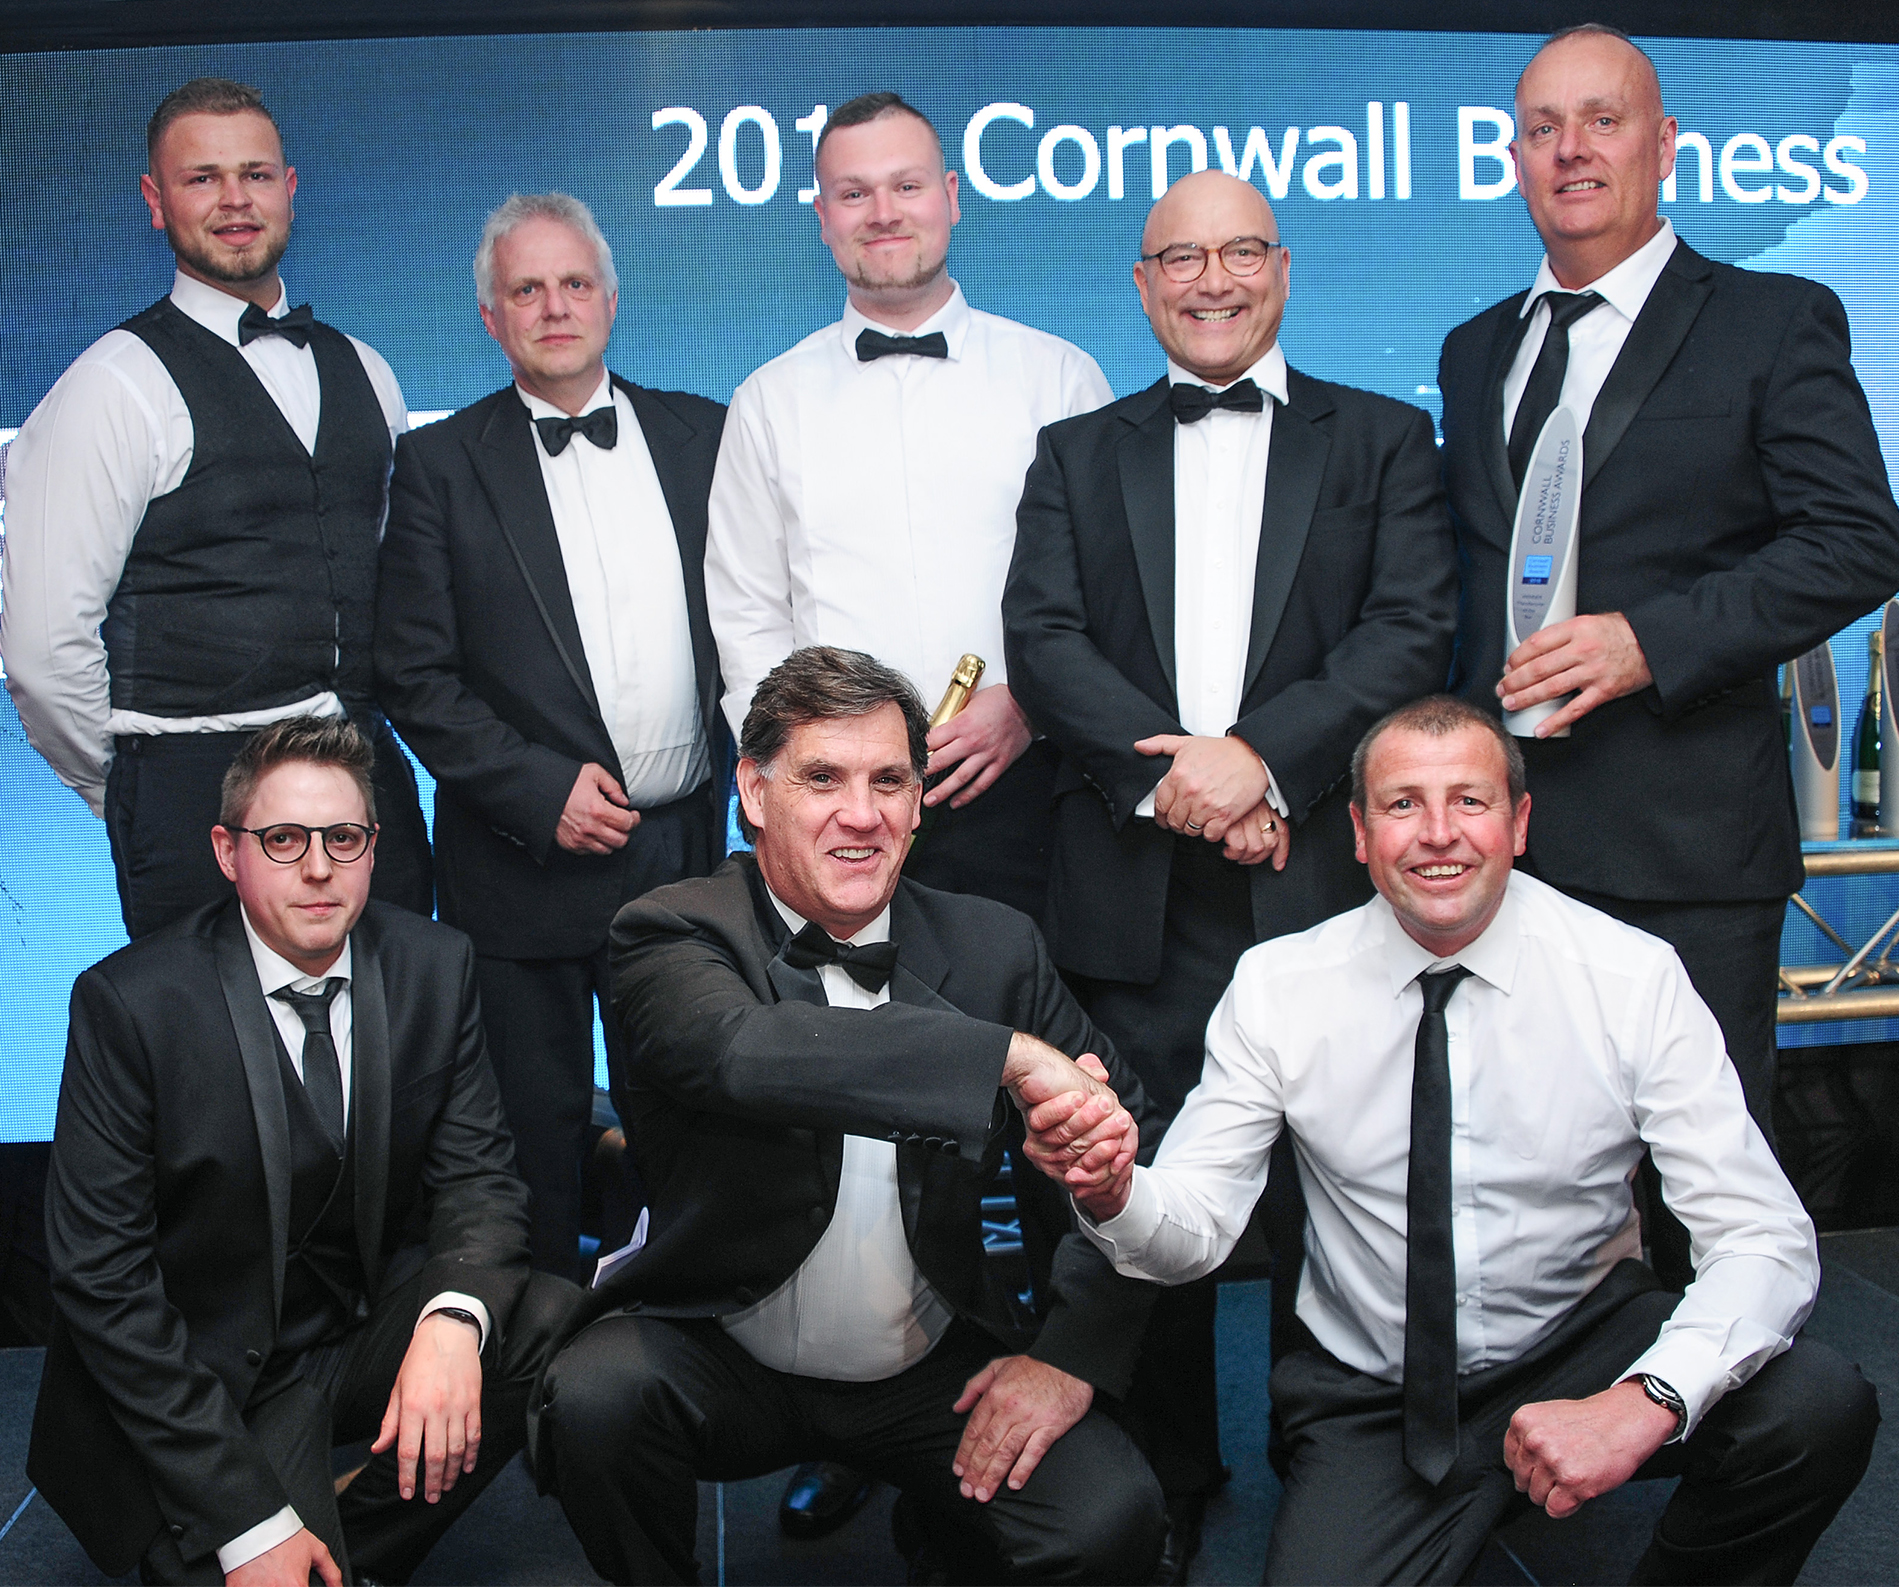 CIS (UK) Ltd - Cornwall Business Awards Team Photo